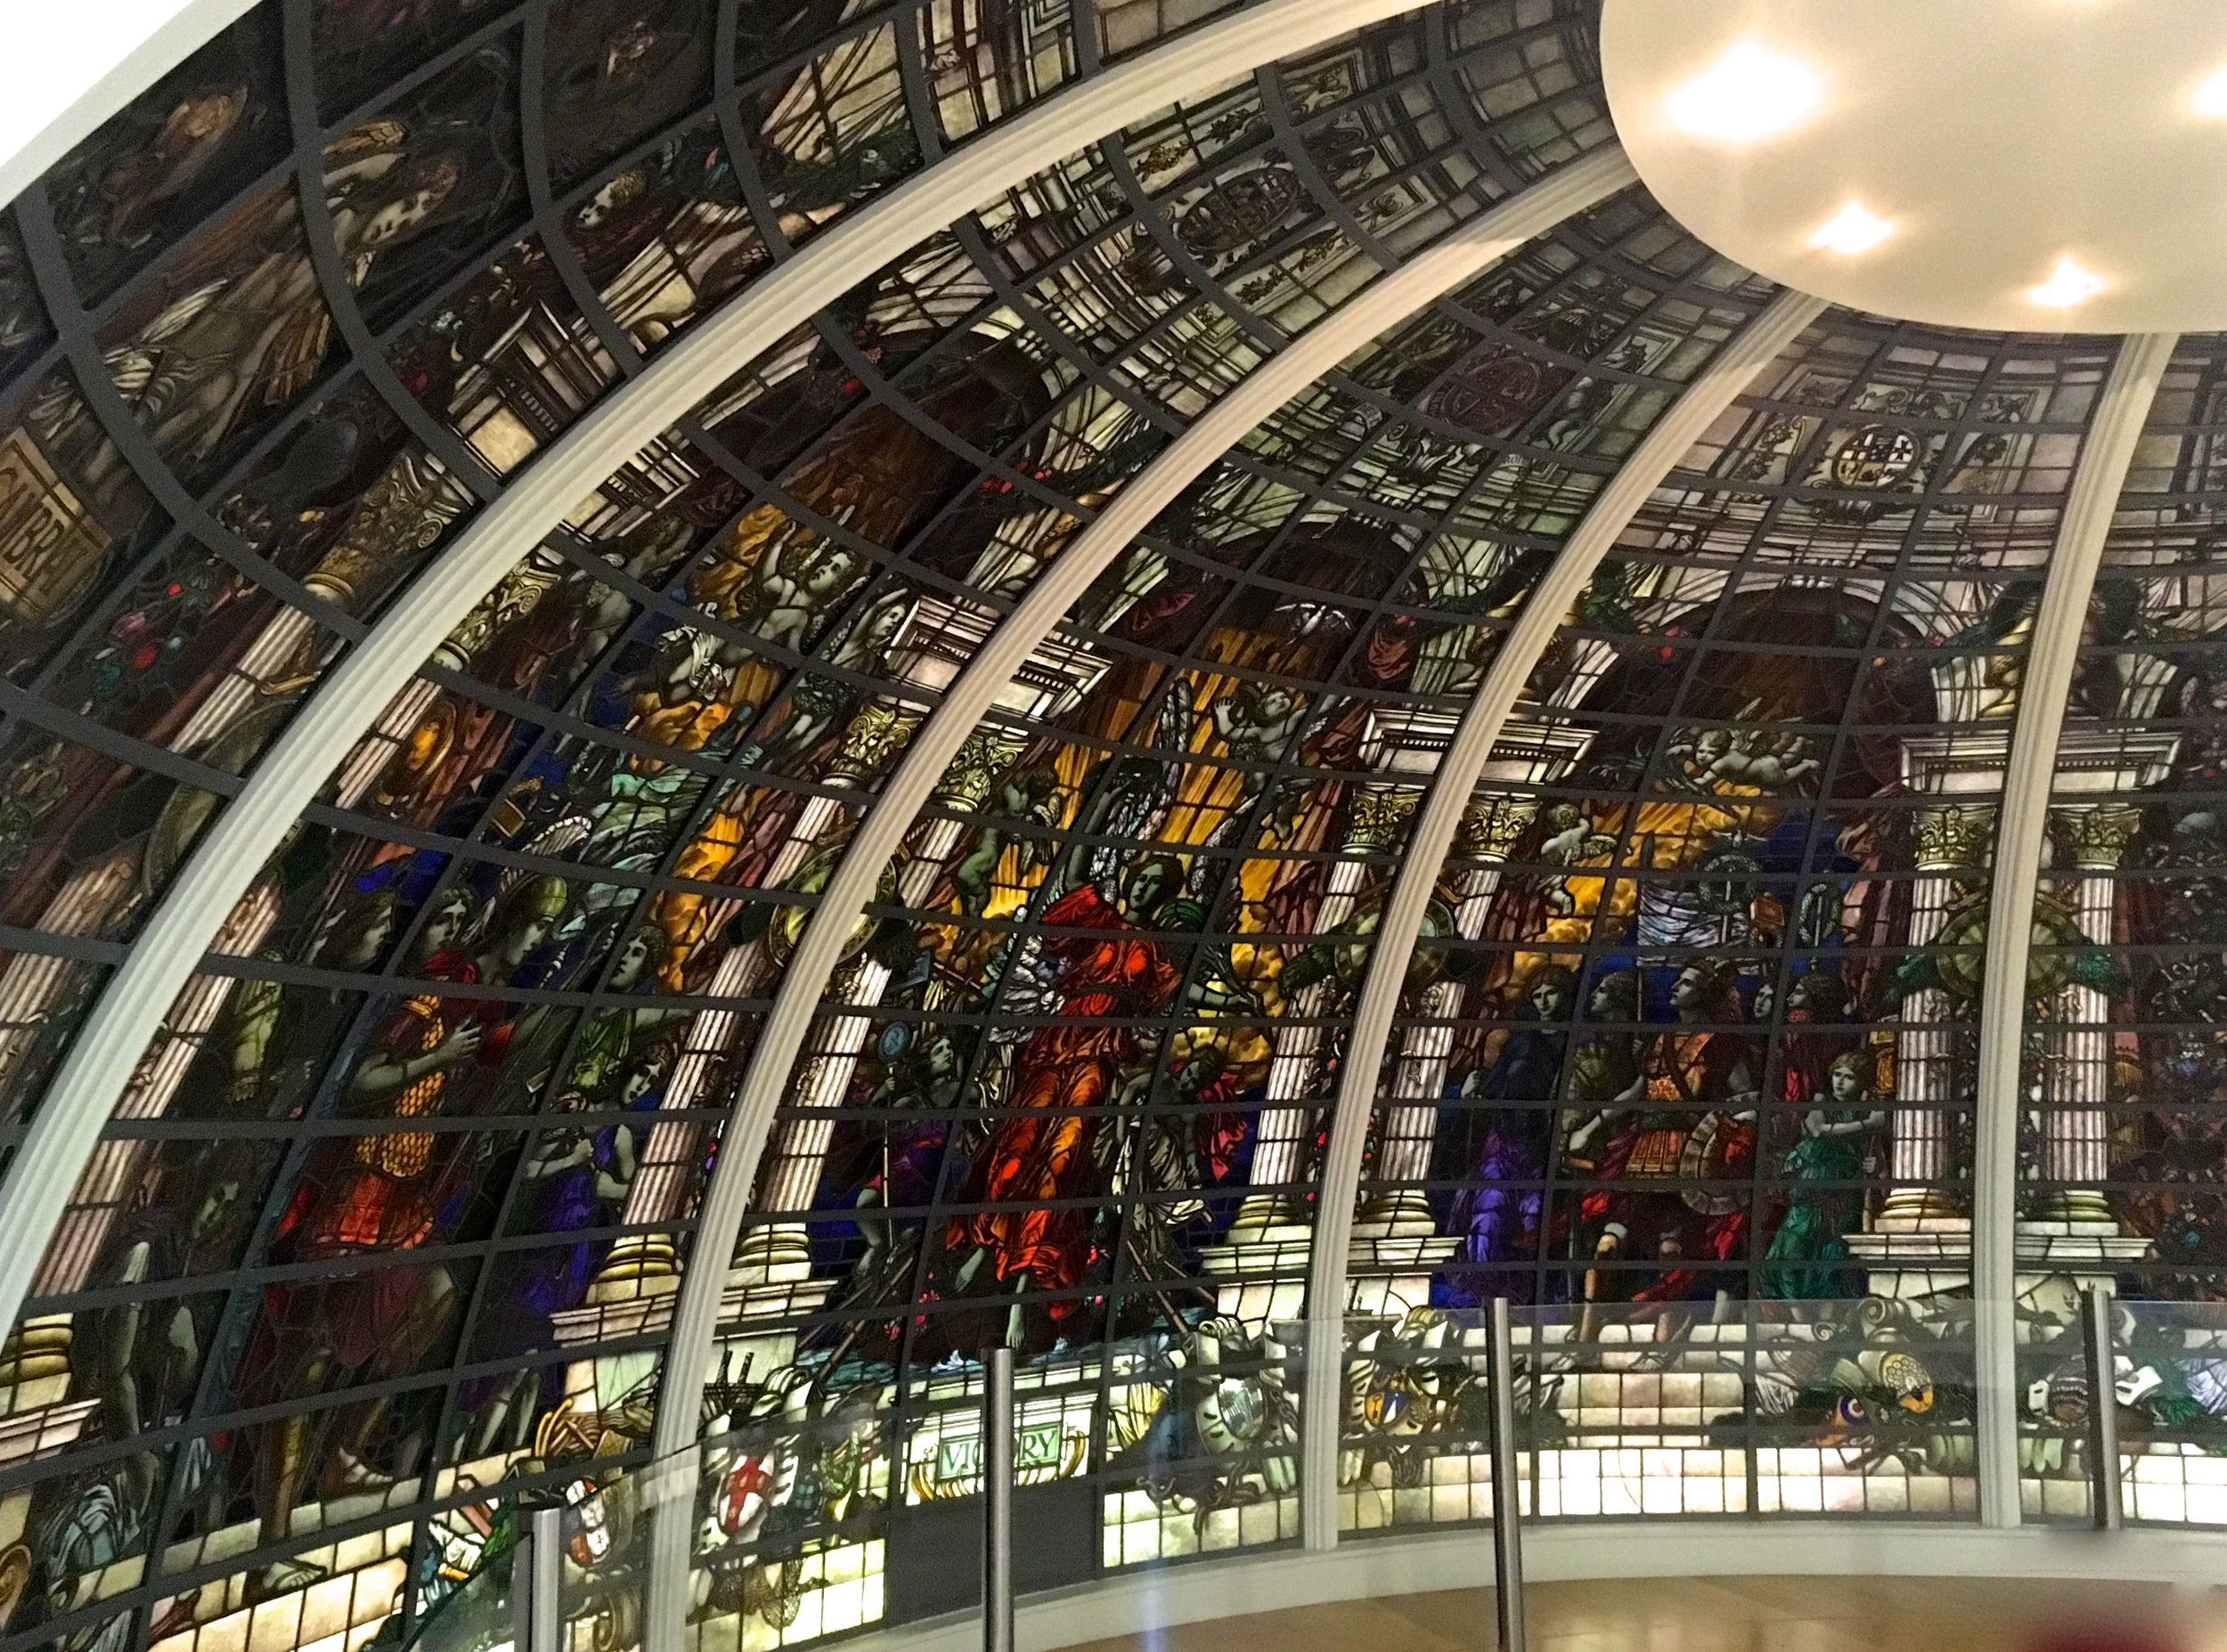 The half-dome stained glass window from the Baltic Exchange London